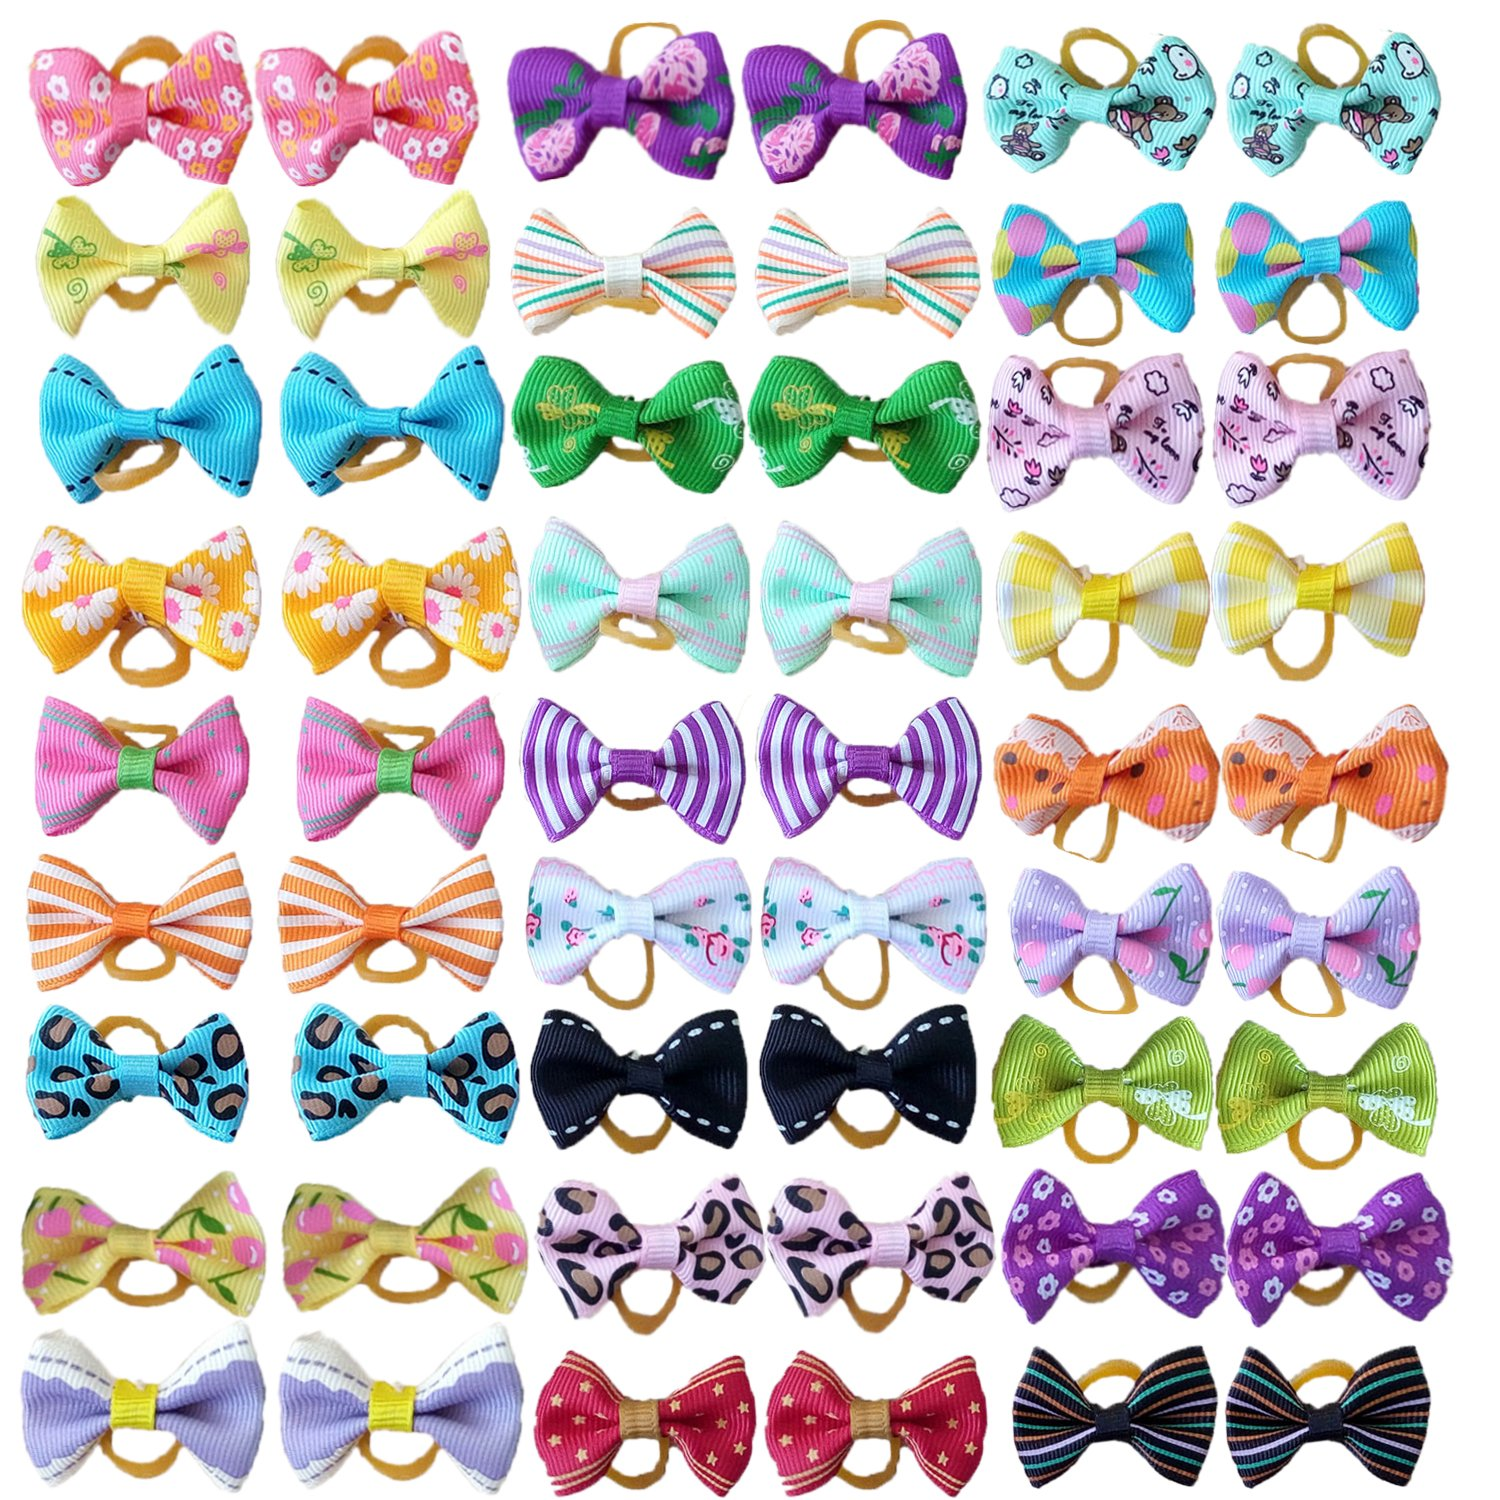 PET SHOW Pet Dog Hair Bows Bowknot for Yorkshire Girls Topknot with Rubber Bands Cat Puppy Headdress Grooming Hair Accessories Random color Pack of 50pcs = 25pairs